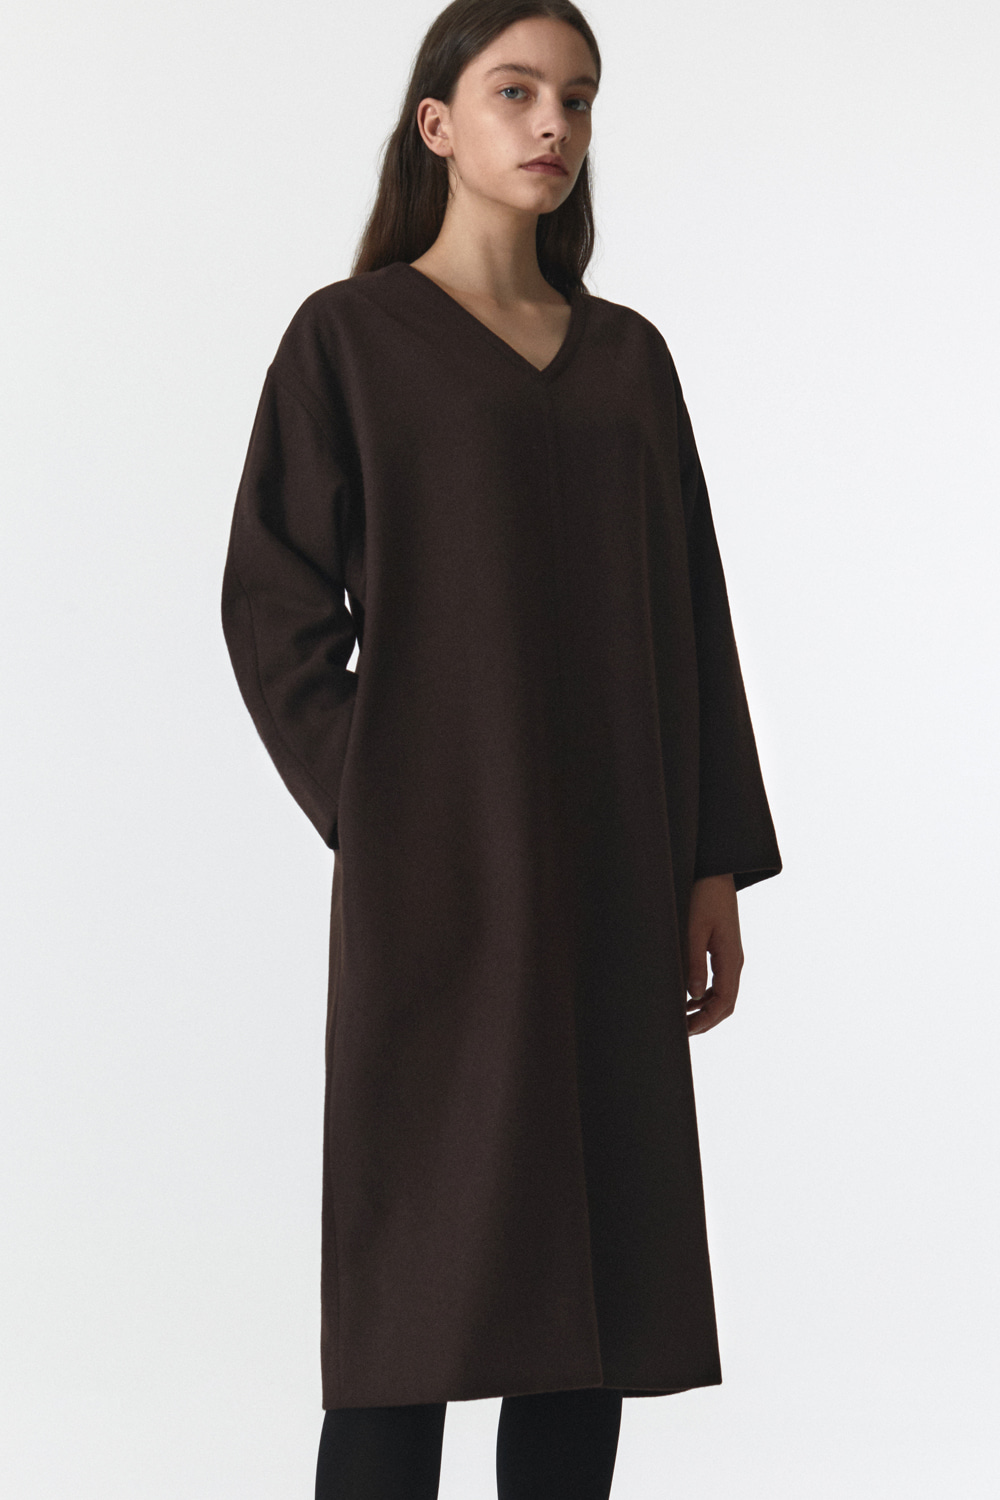 Wool Over Dress Women JA [Brown] -10%